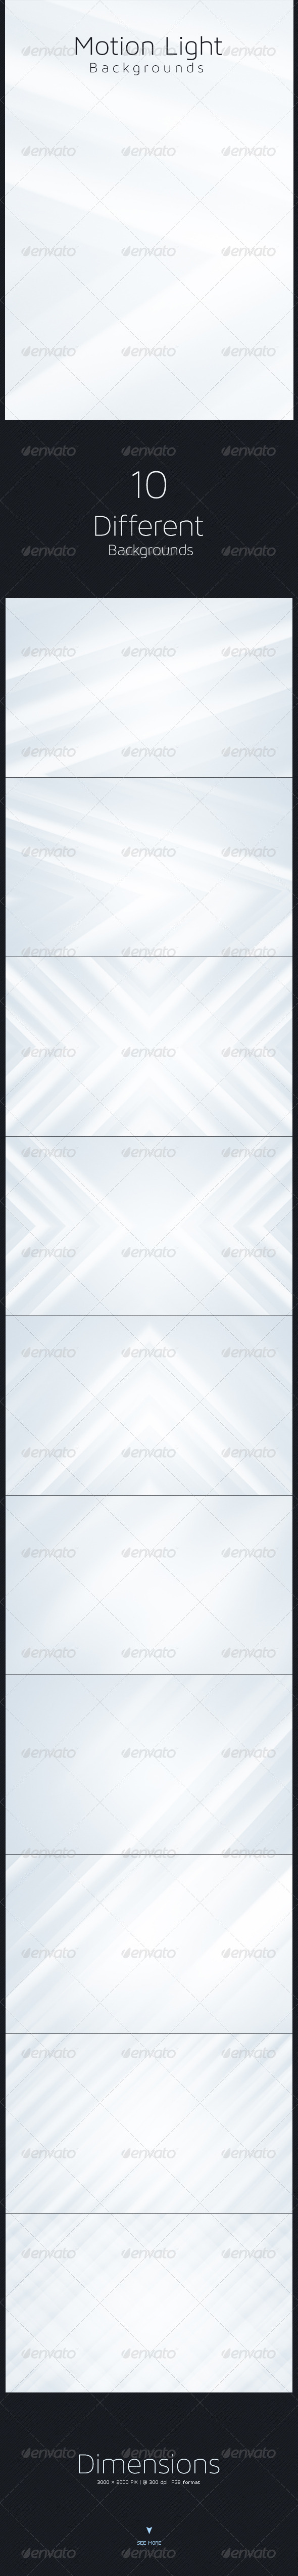 Motion Light Backgrounds - Abstract Backgrounds